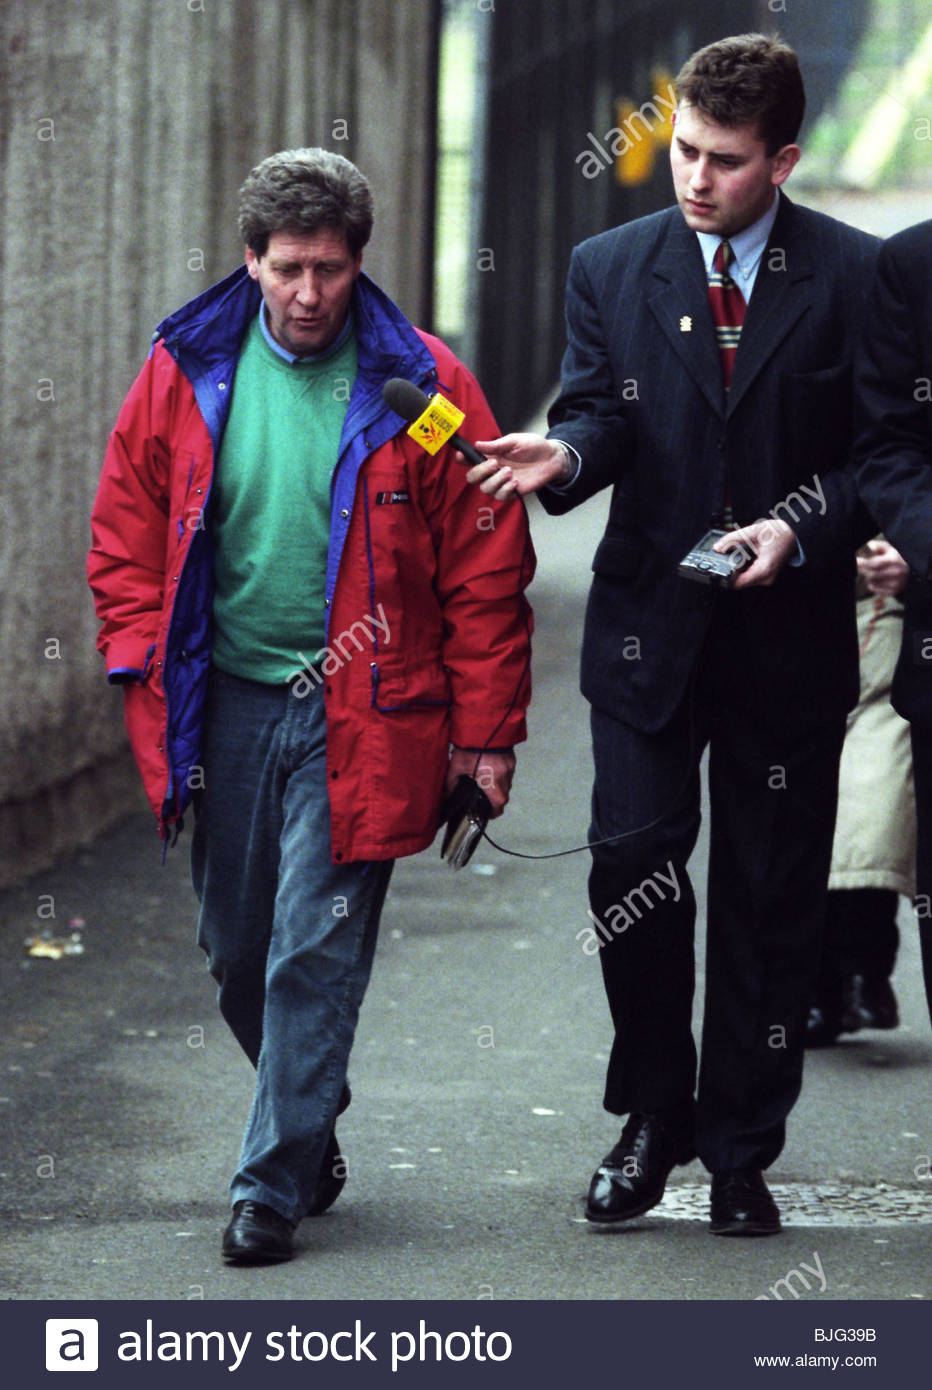 MARCH 1996 FALKIRK Falkirk boss John Lambie (left) is hounded by press as he prepares to resign as manager - Stock Image